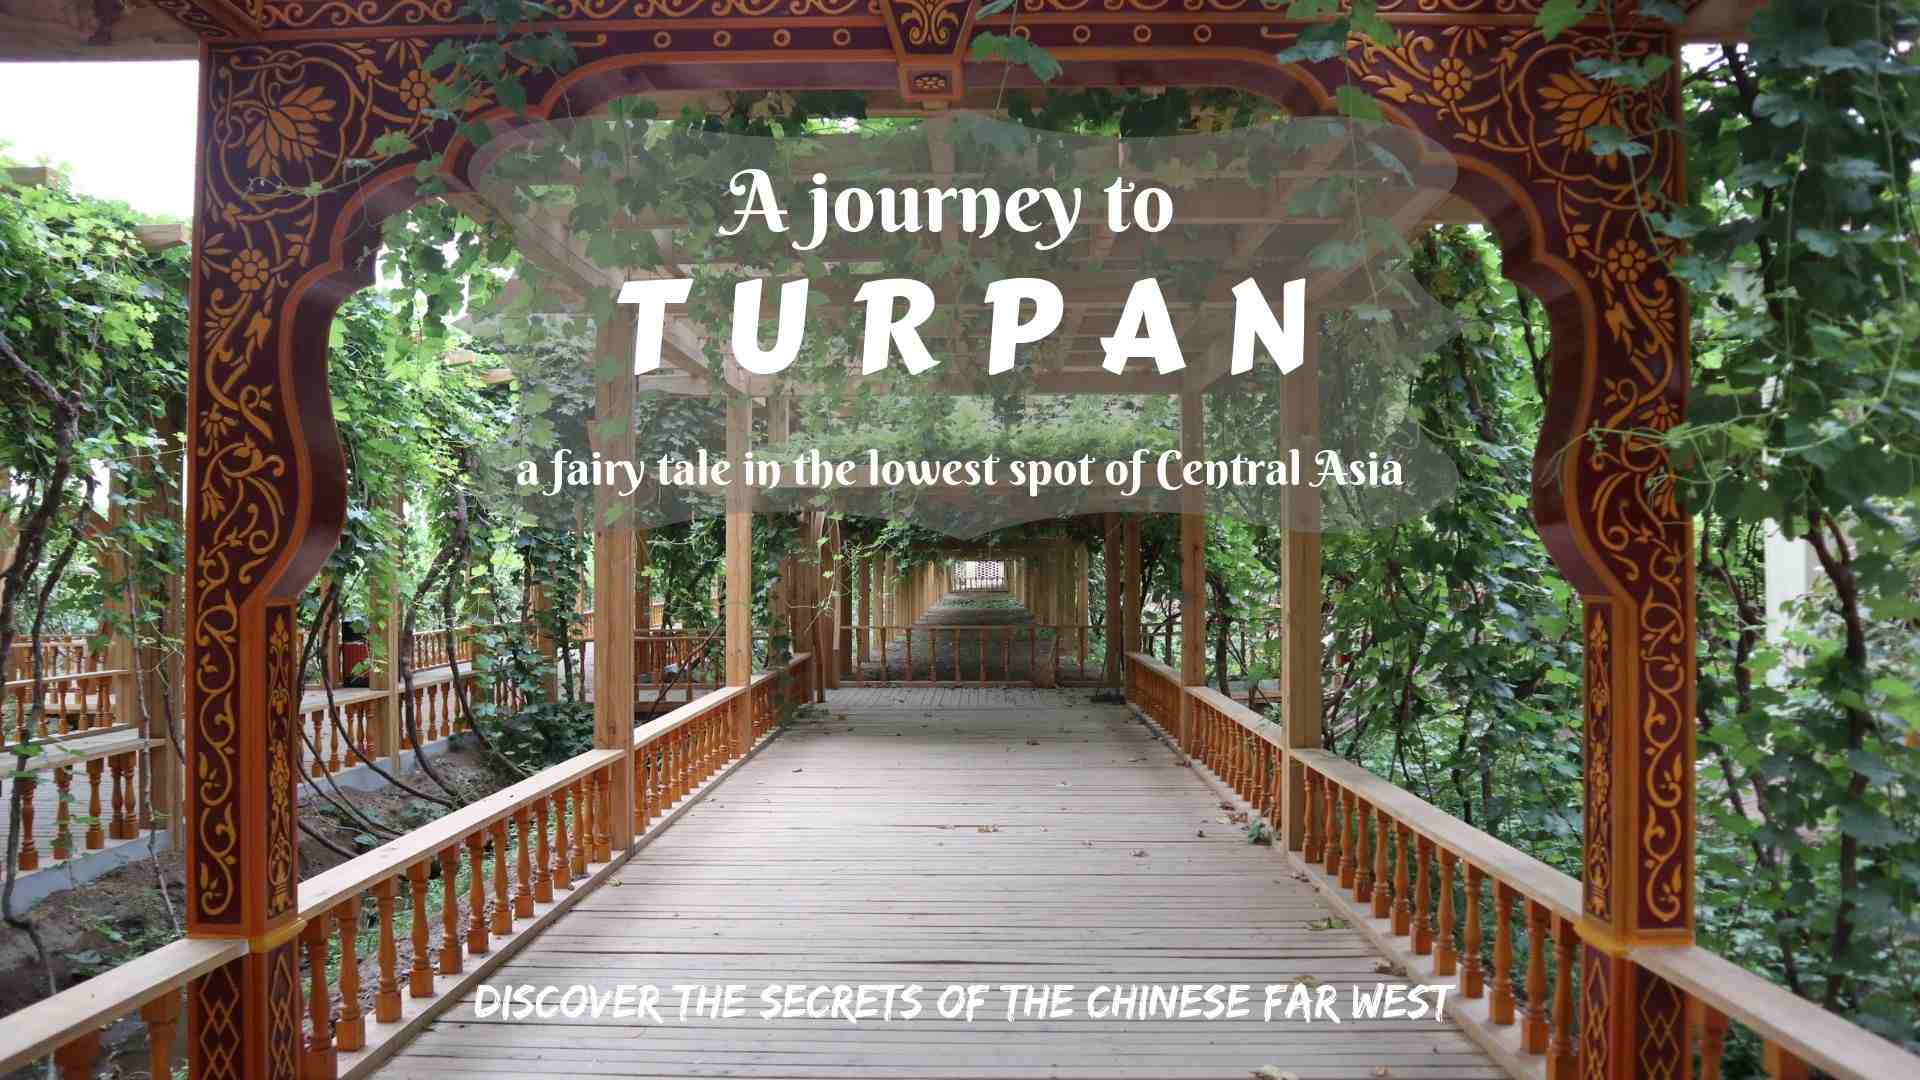 A journey to Turpan- a fairy tale in the lowest spot of Central Asia